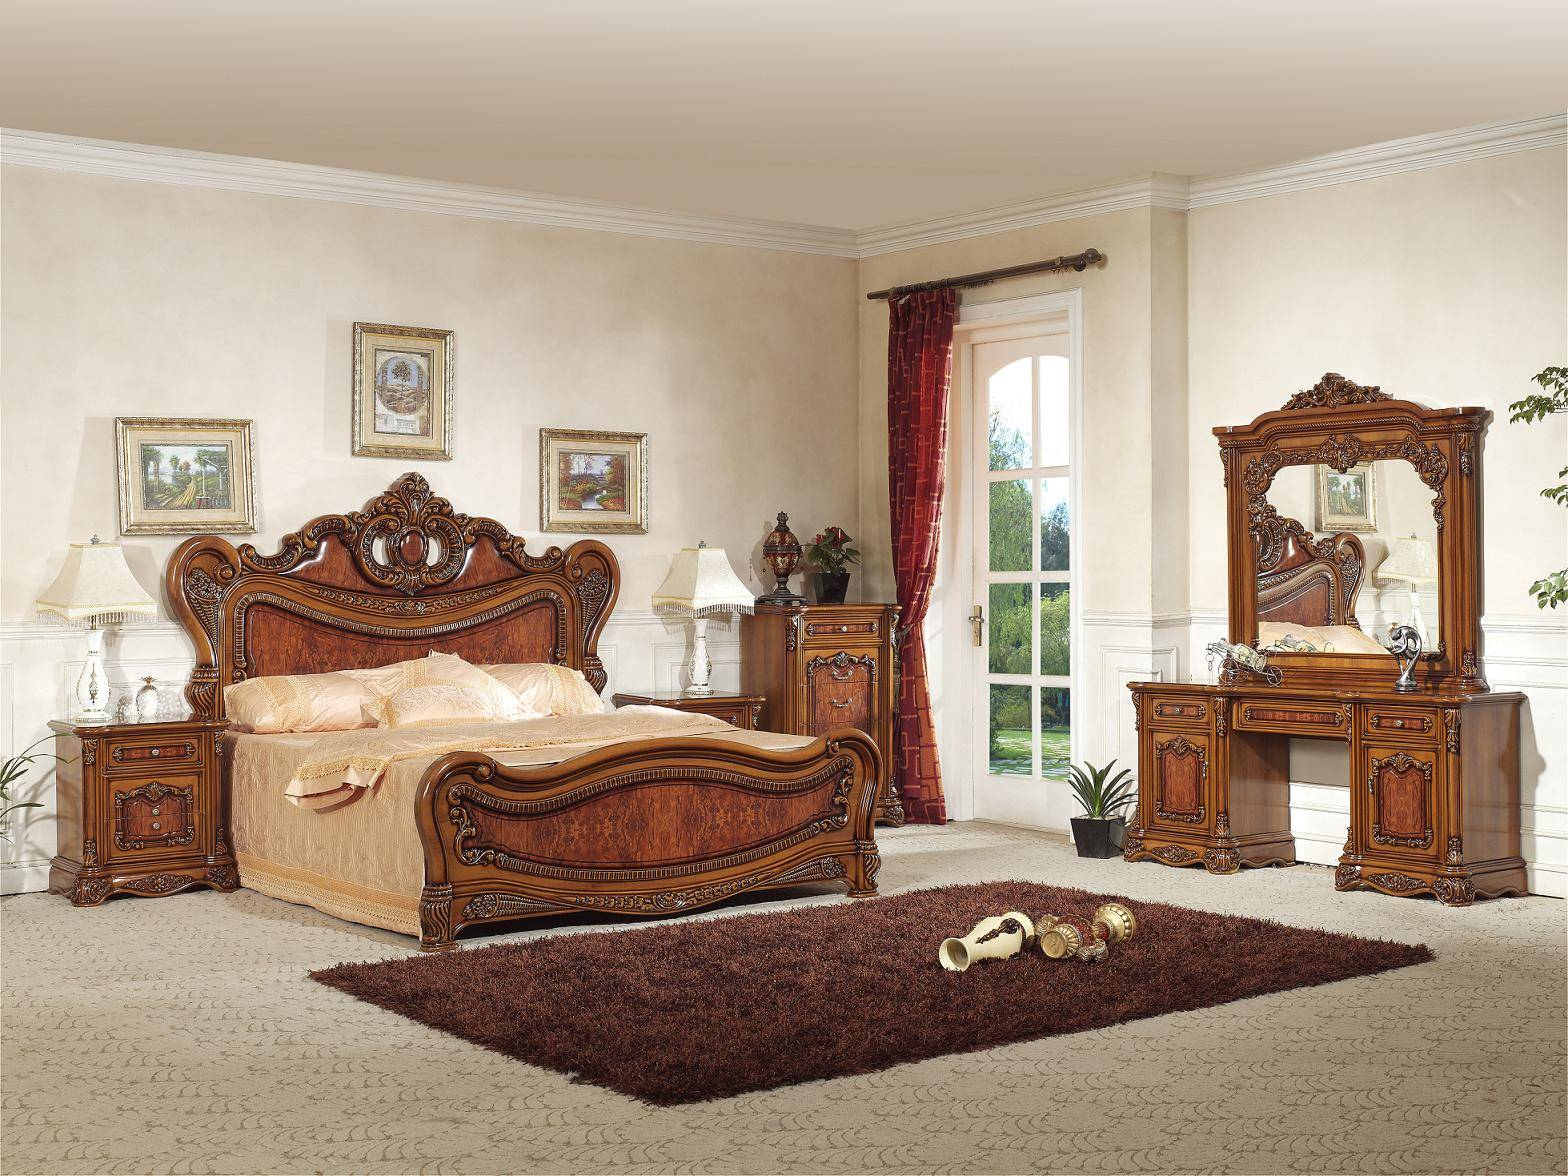 Style Bedroom Furniture Foshan Shunde Excellence Years Furniture